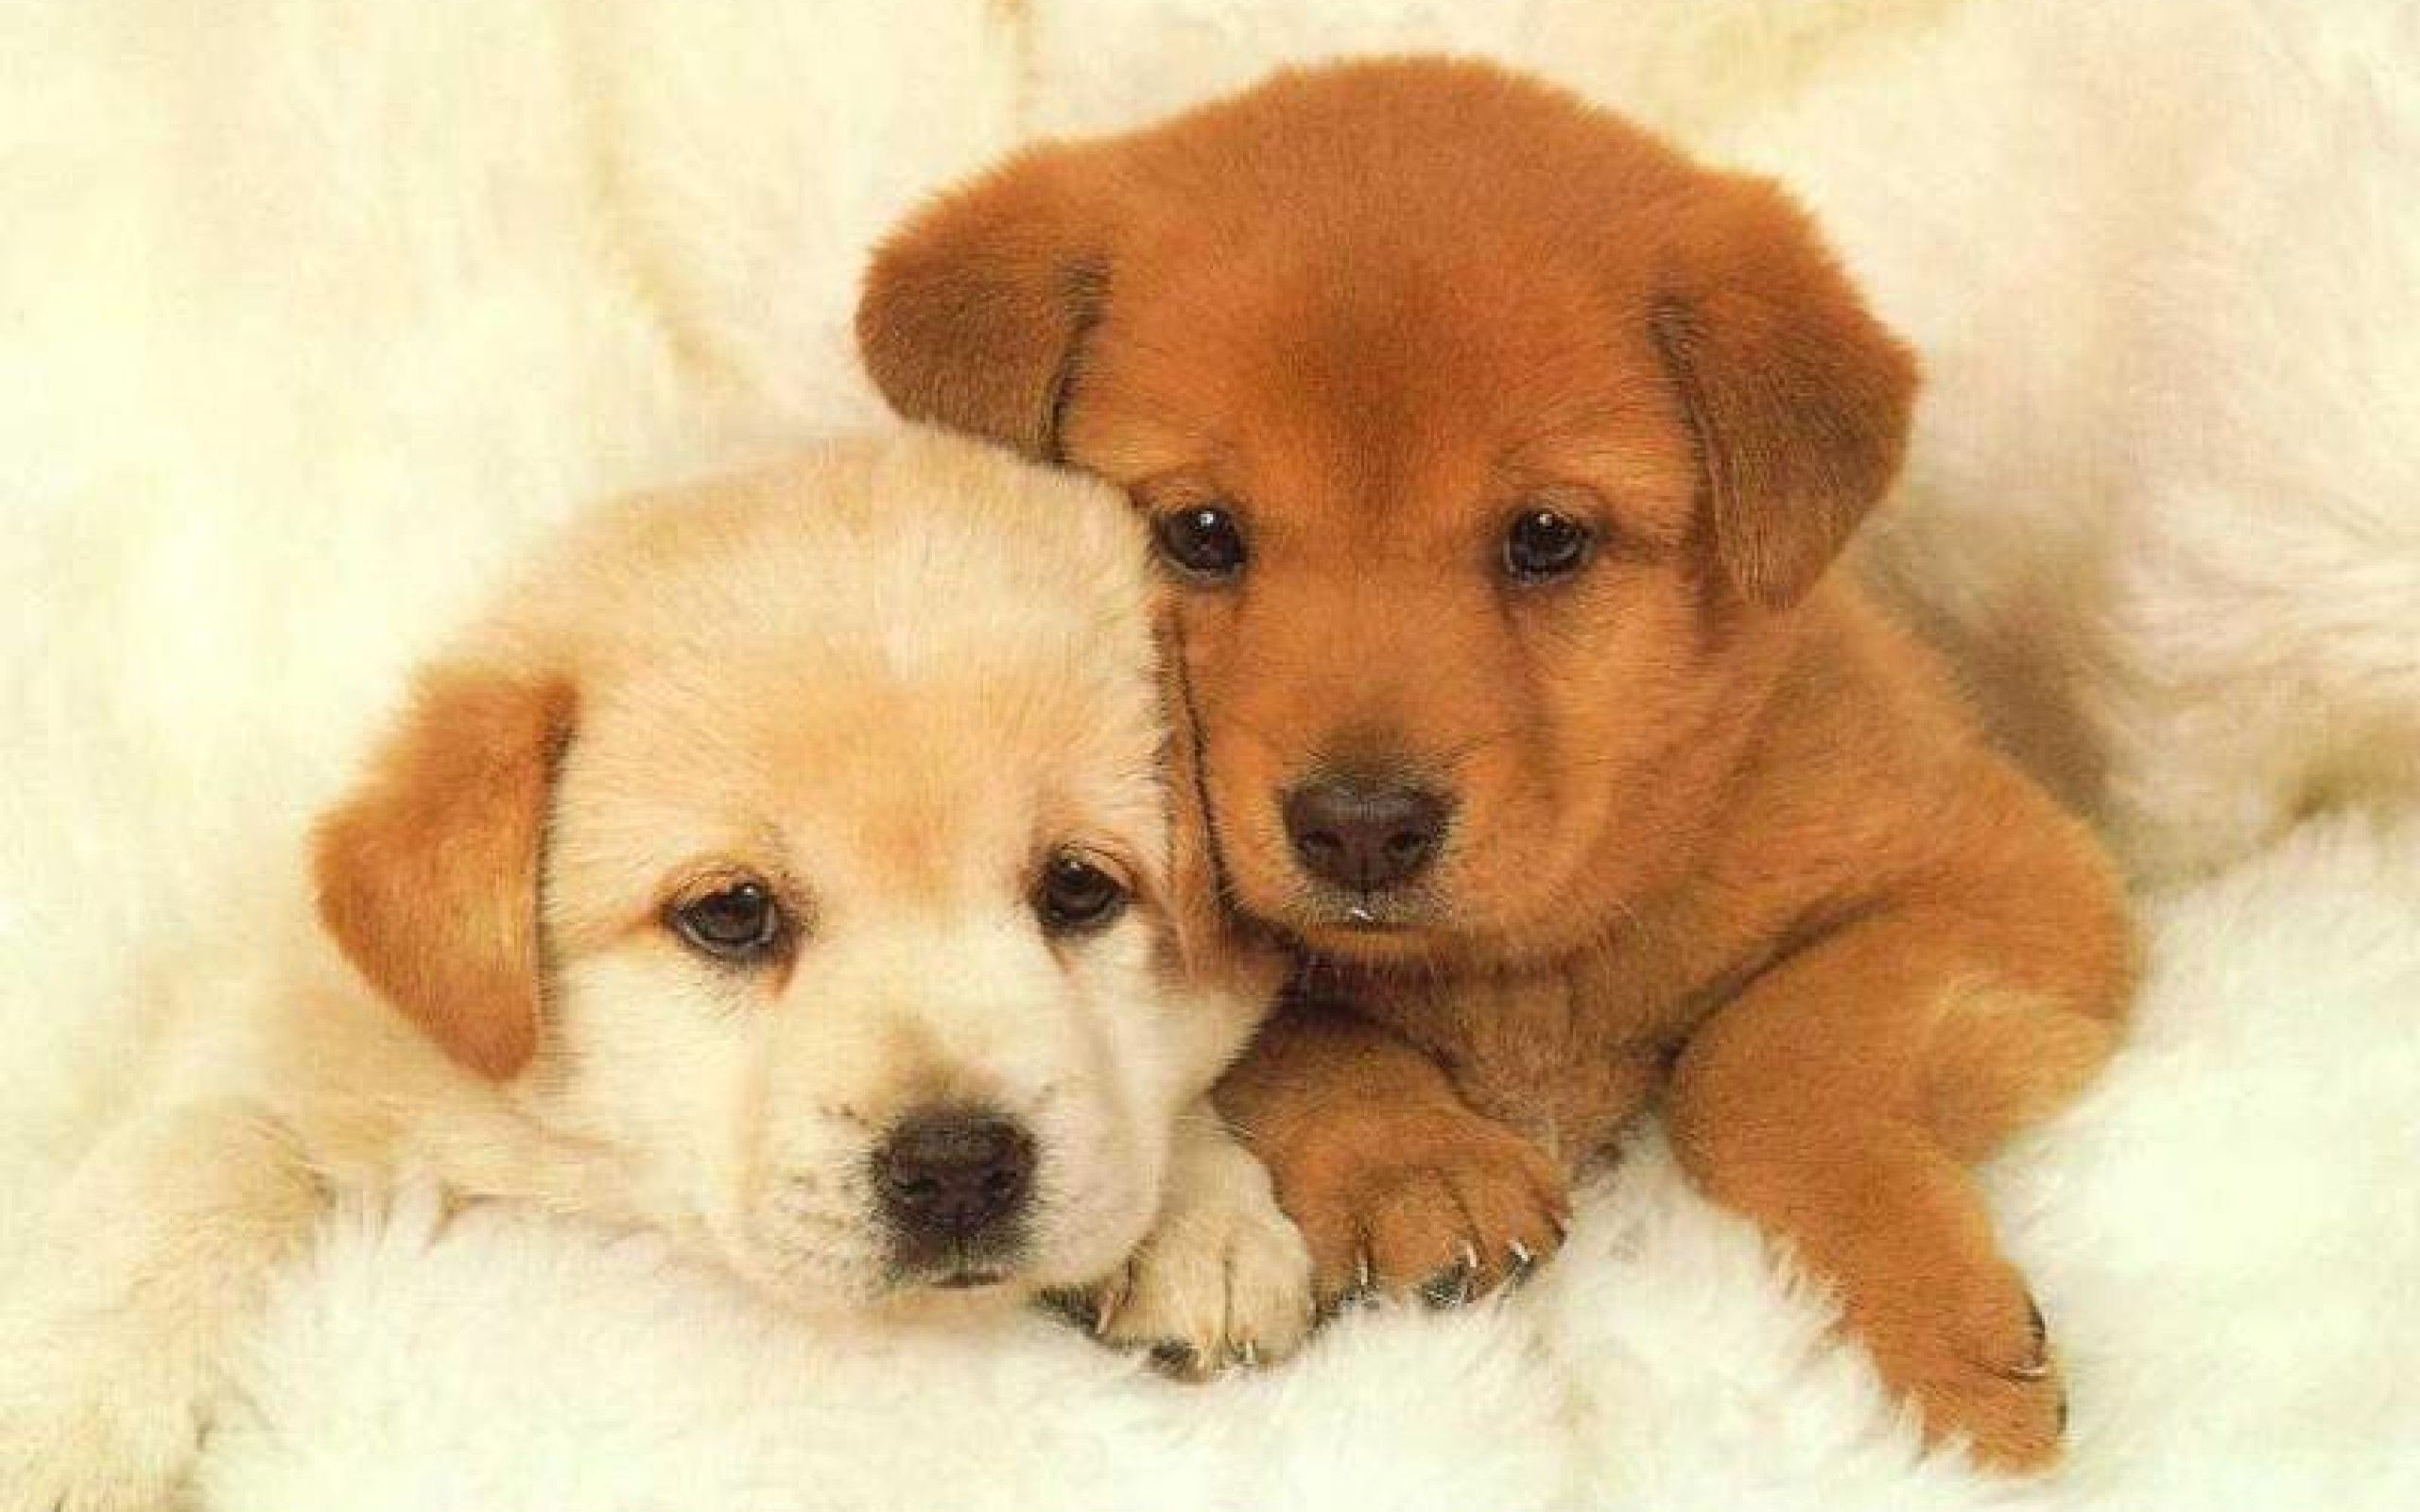 Puppies Wallpaper Animal Backgrounds Cute Dog Pictures Cute Puppy Pictures Baby Dogs